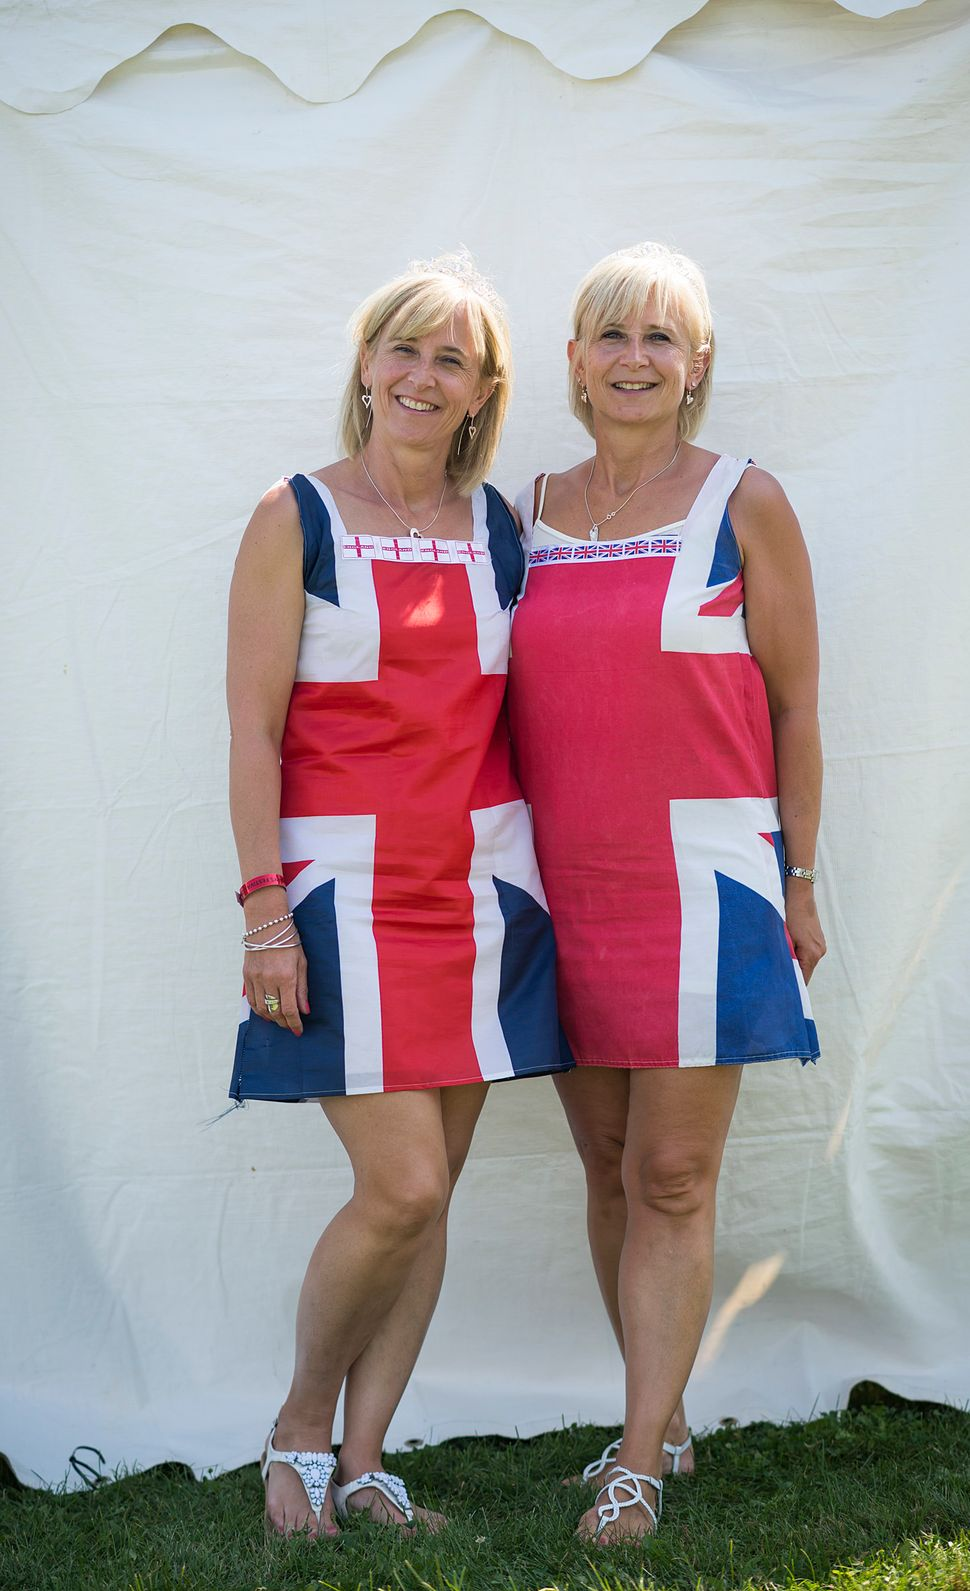 Donna (left) and Melanie Batherhail from the United Kingdom.